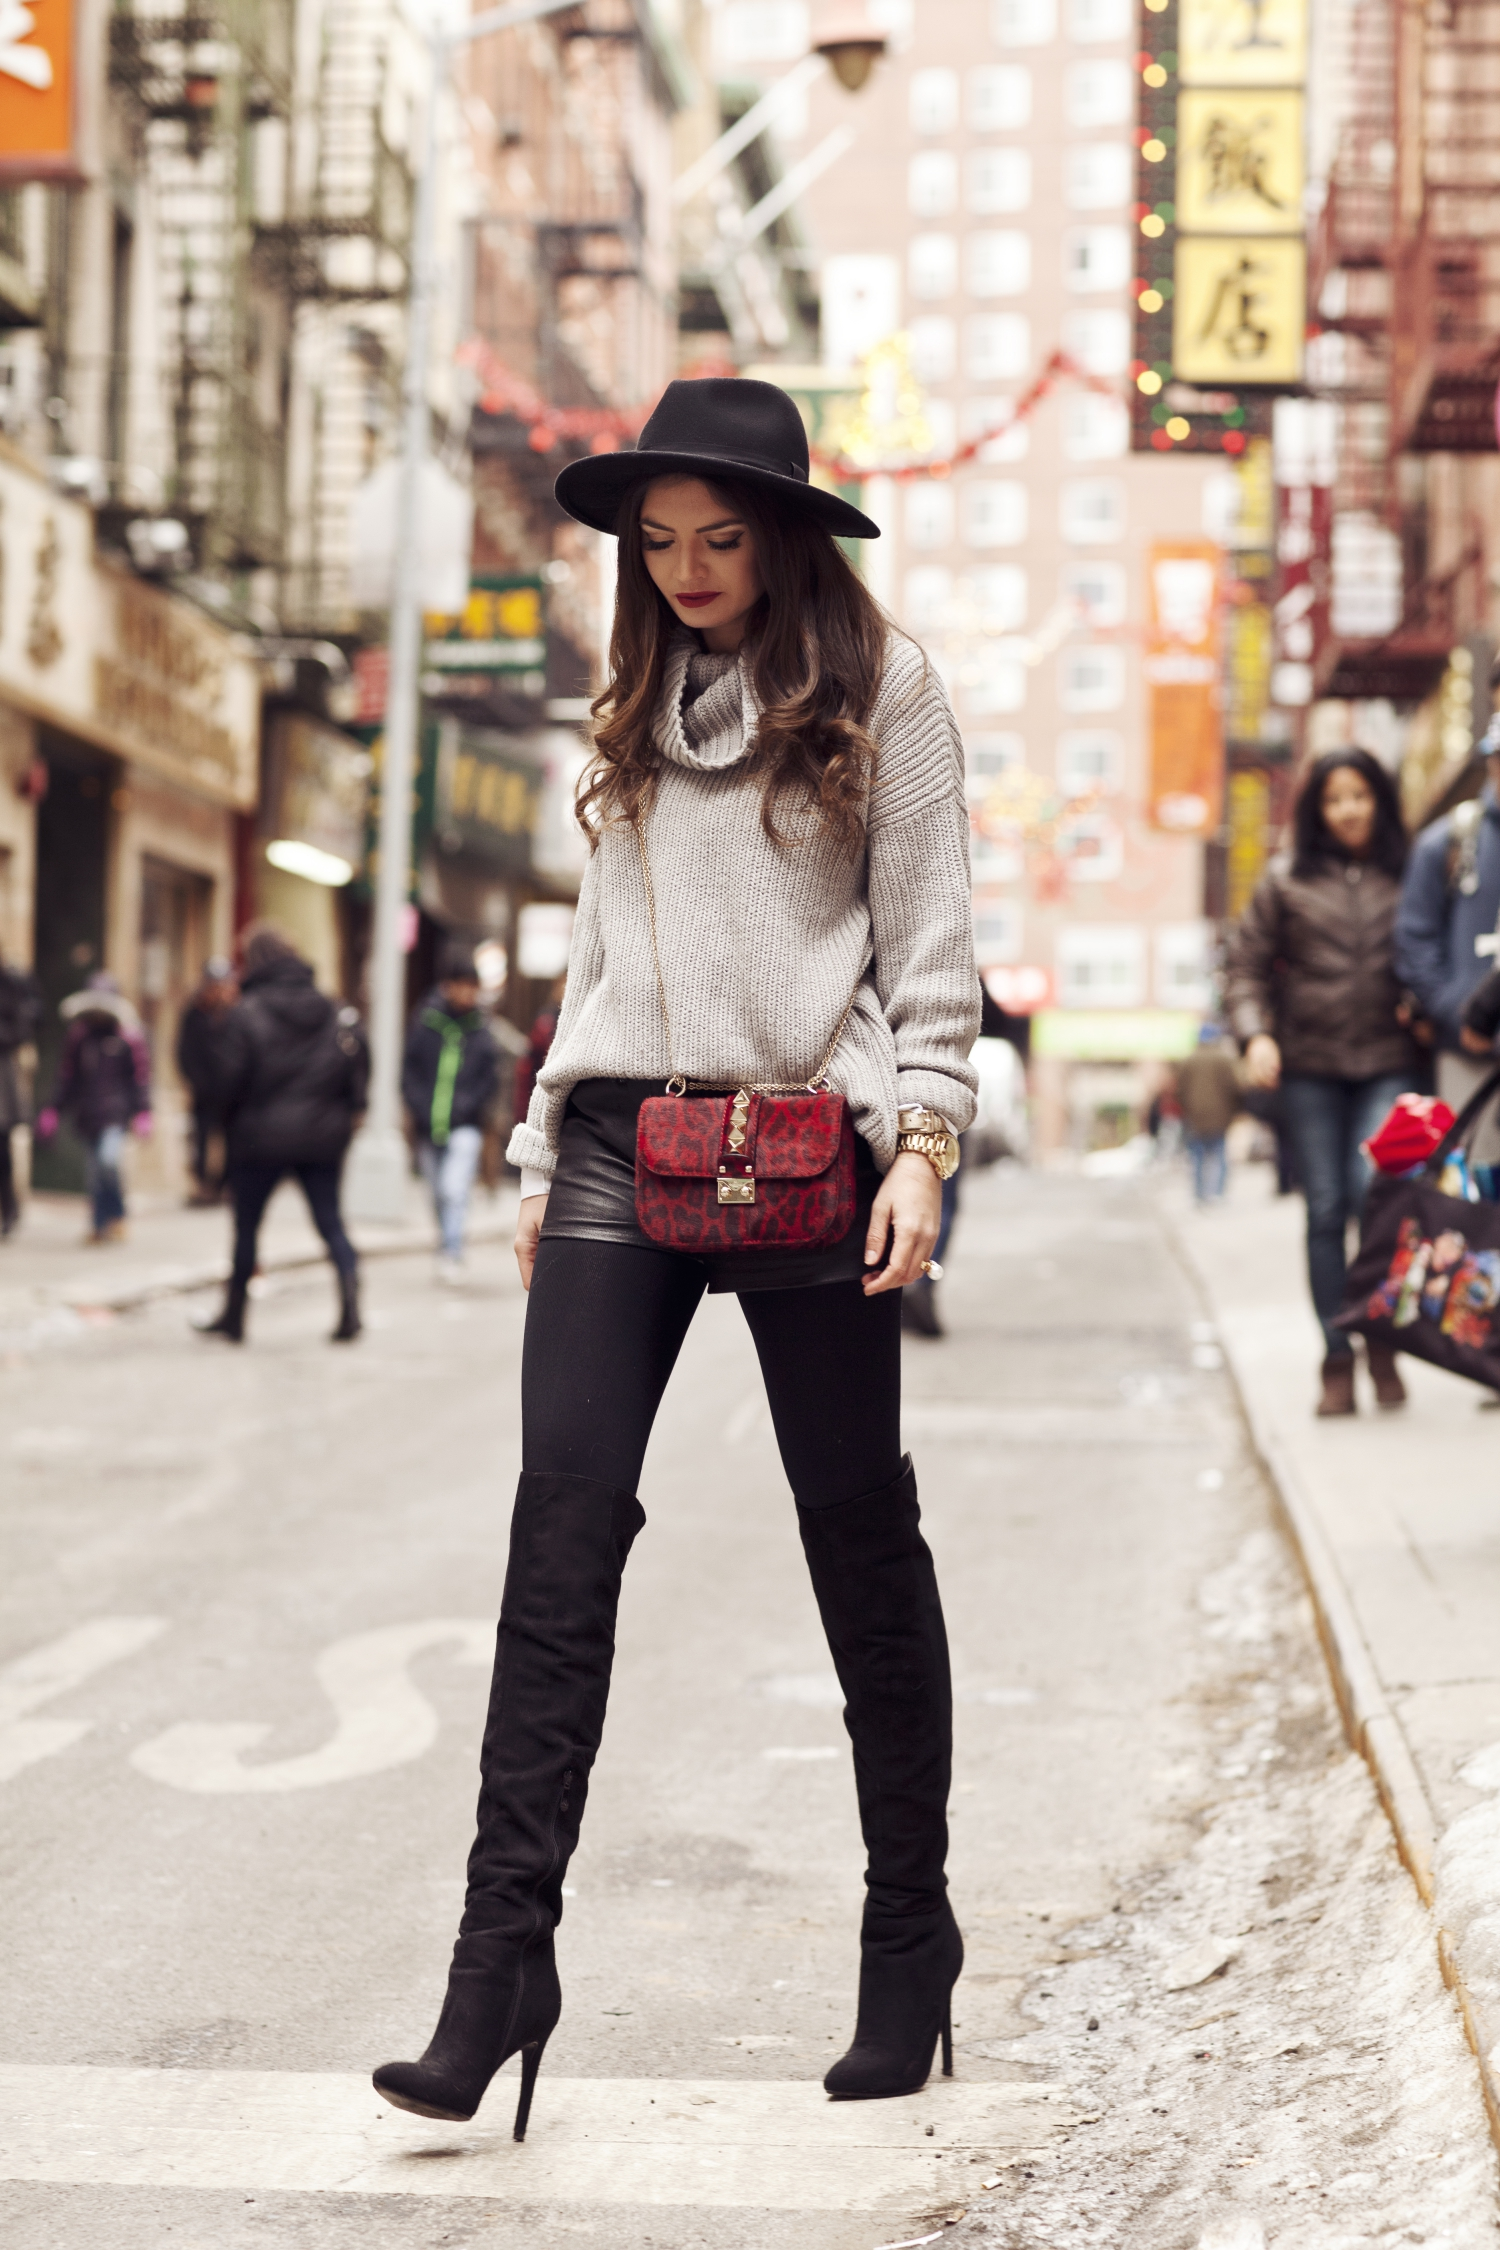 new-york-fashion-week-outfit-valentino-bag-overknees-cozy-knit-leather-shorts